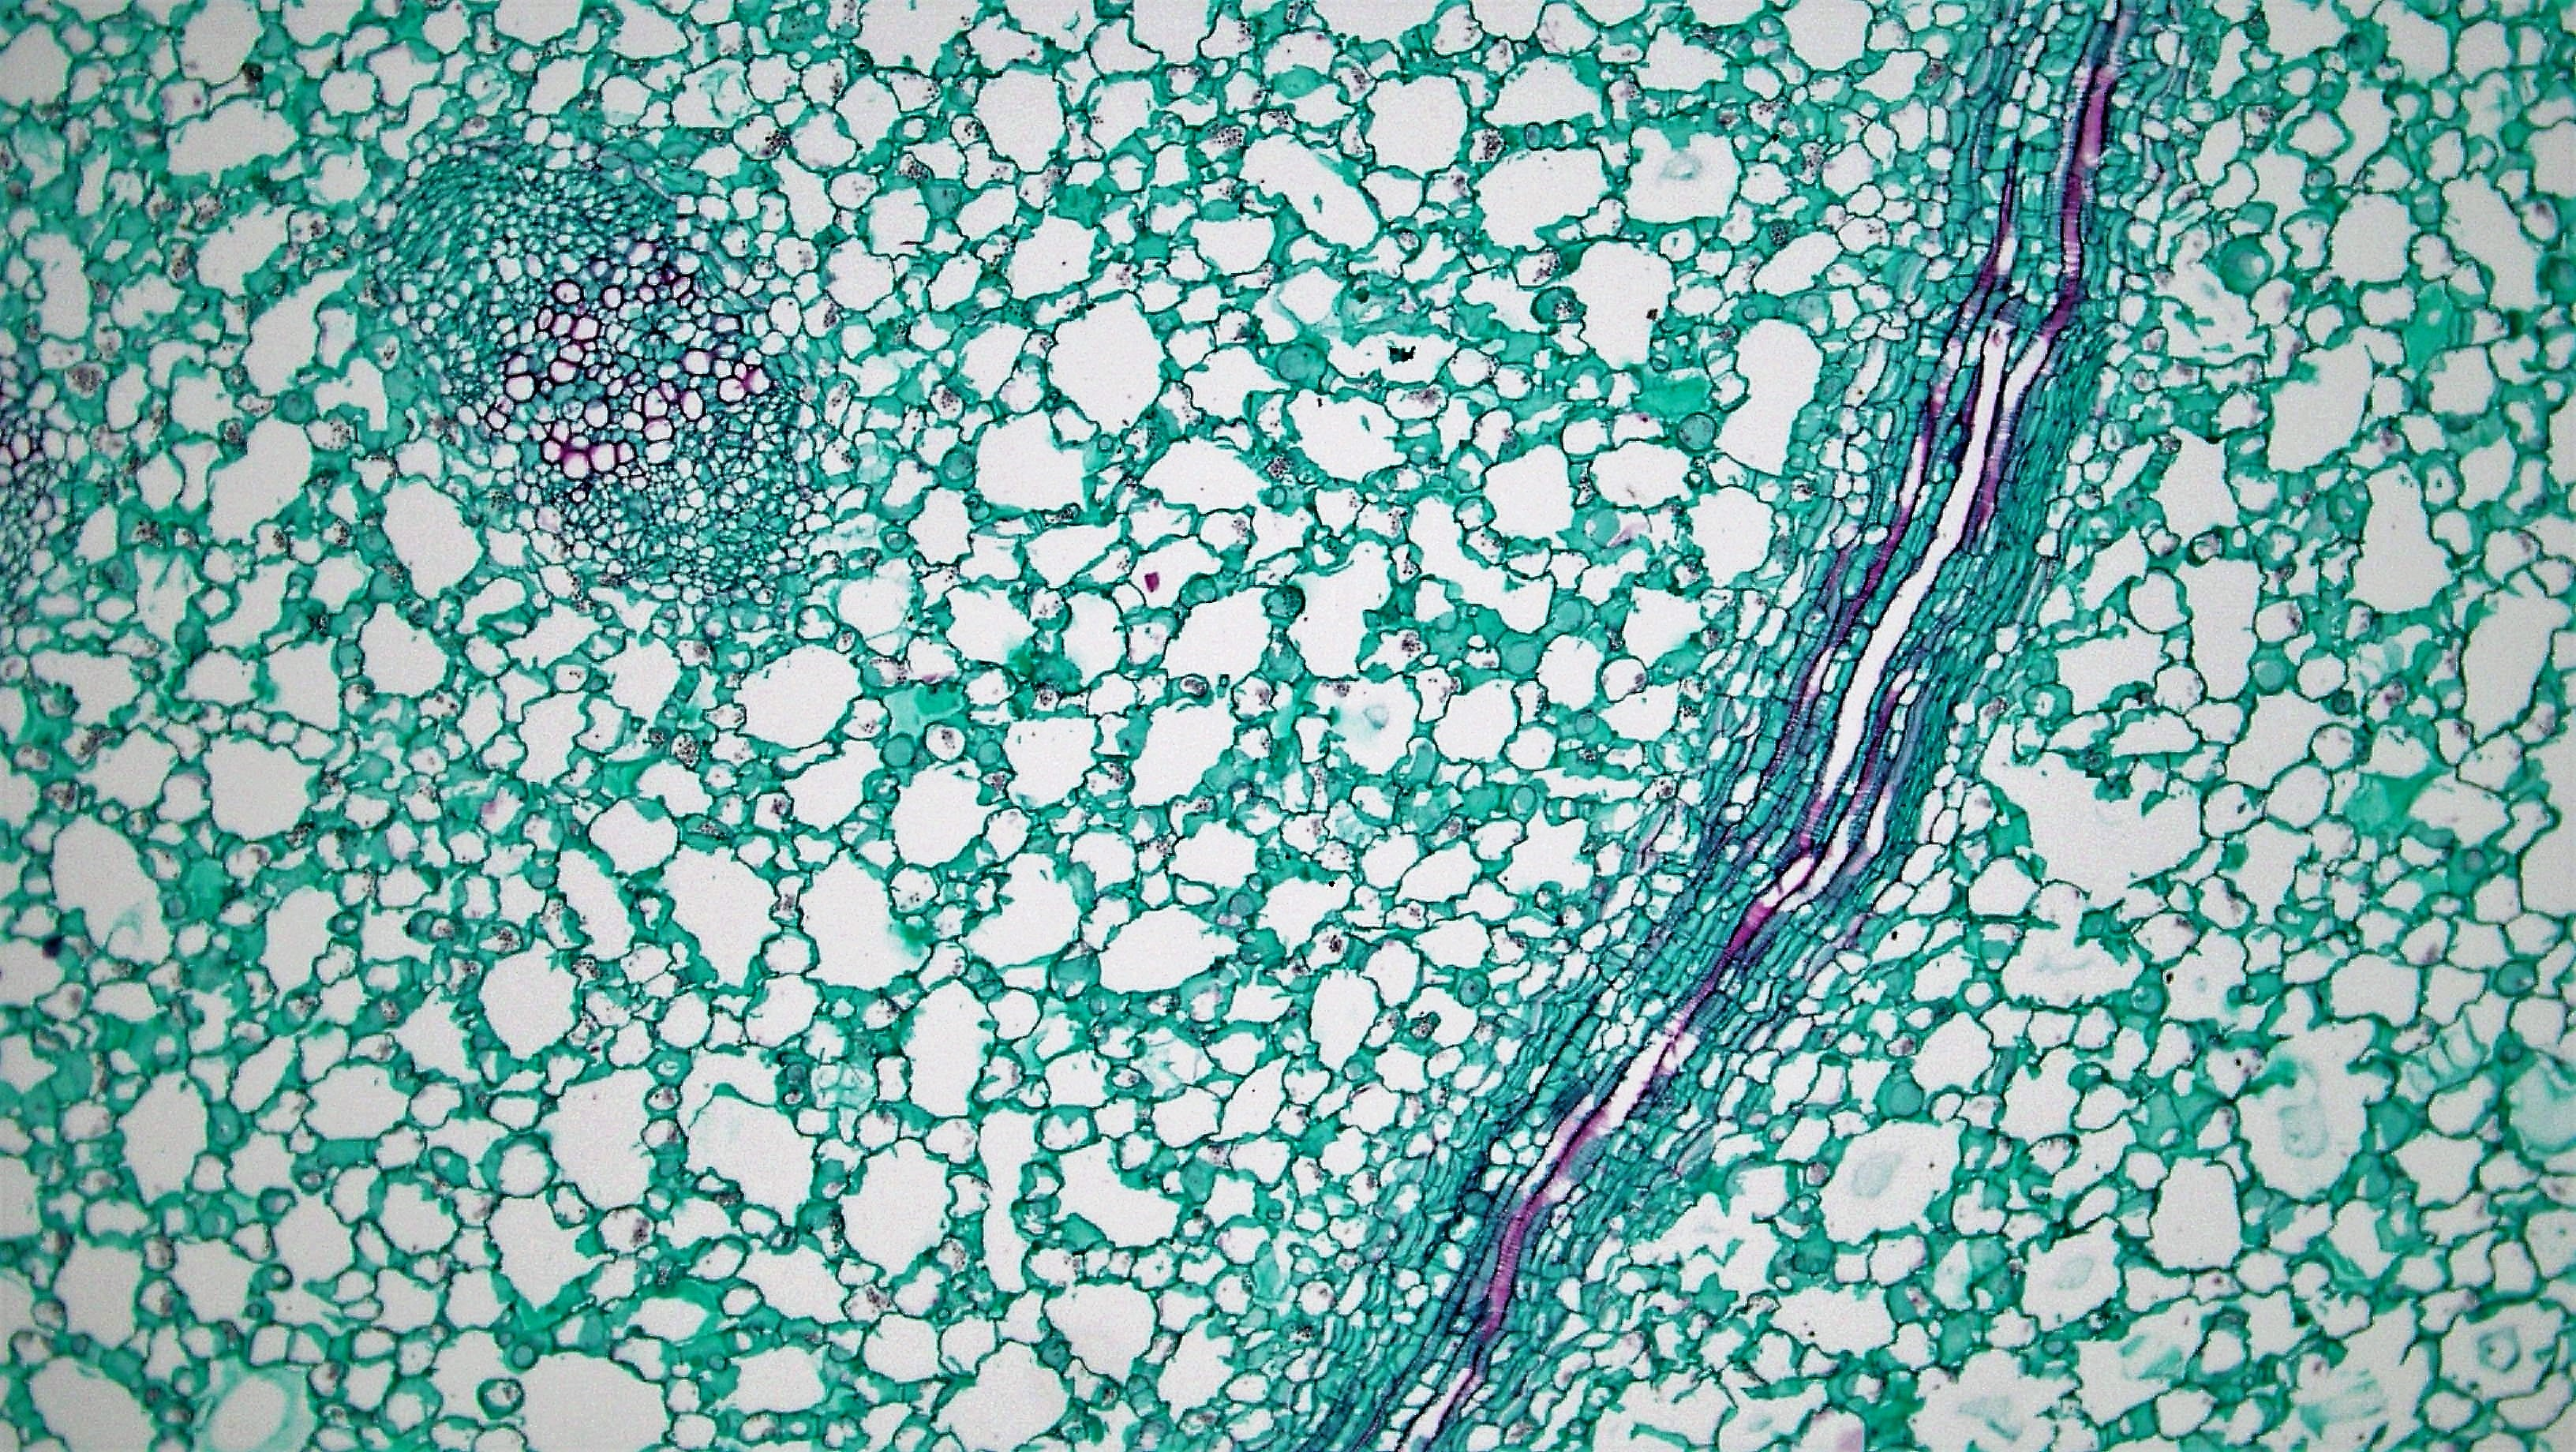 Submerged dicot stem: xylem elements in nymphaea photo